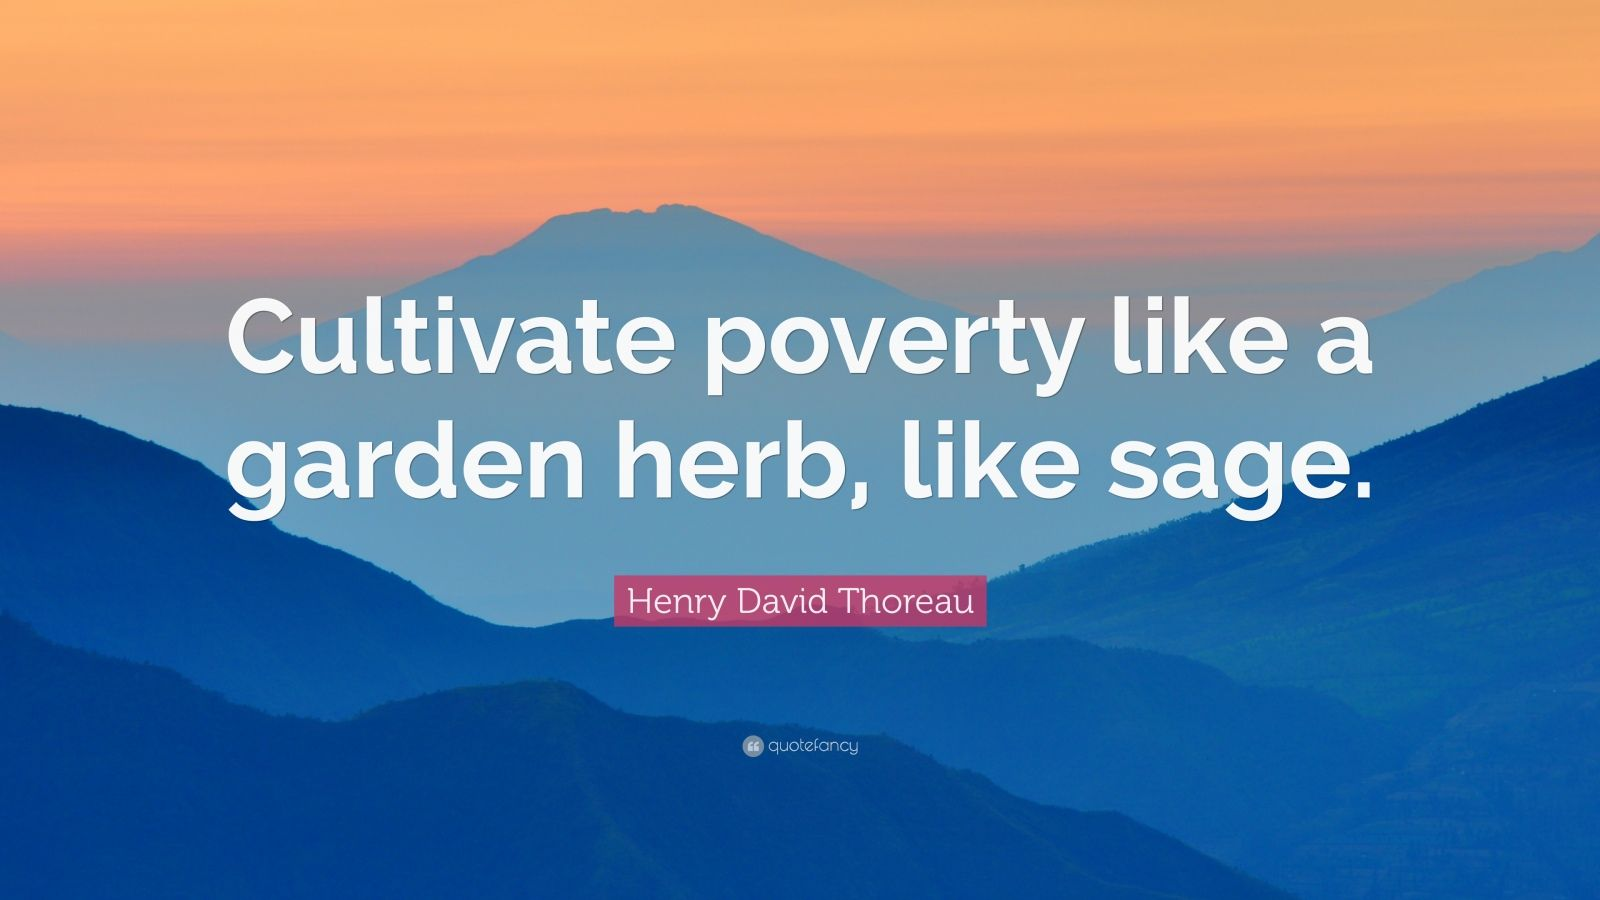 """Henry David Thoreau Quote: """"Cultivate poverty like a garden herb, like sage."""""""